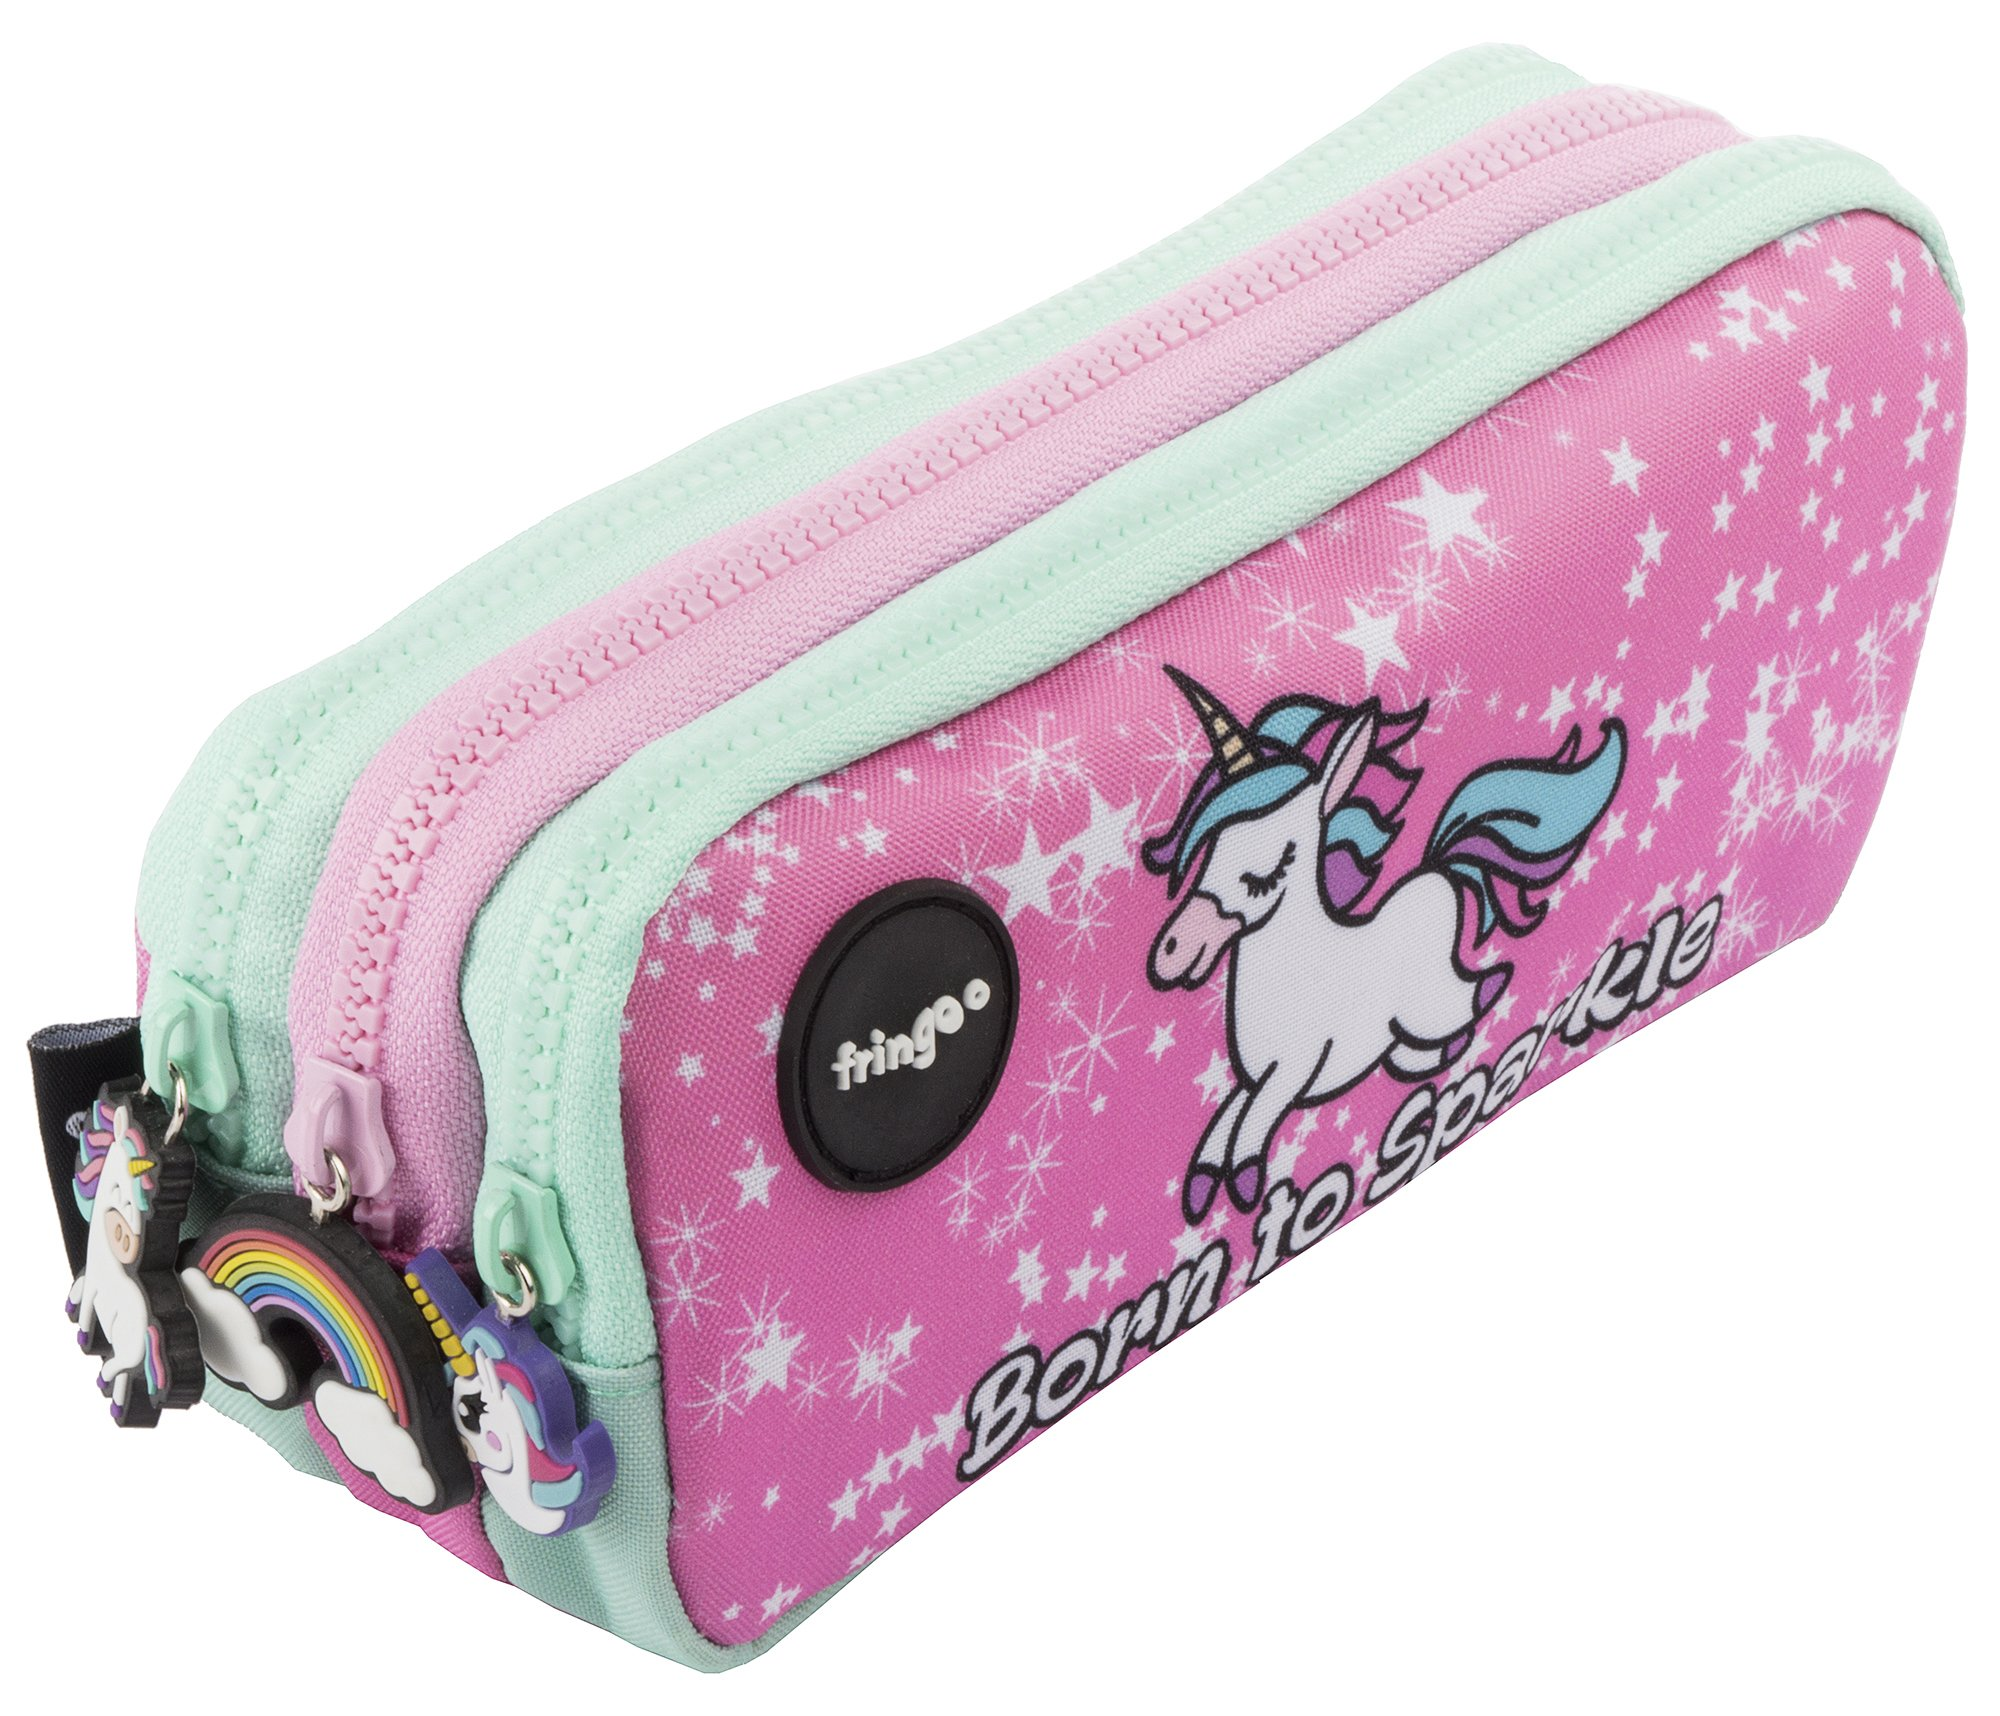 FRINGOO – Trousse à crayons avec 3 compartiments jolie et amusante – Pour enfant Large Born To Sparkle – 3 Compartments